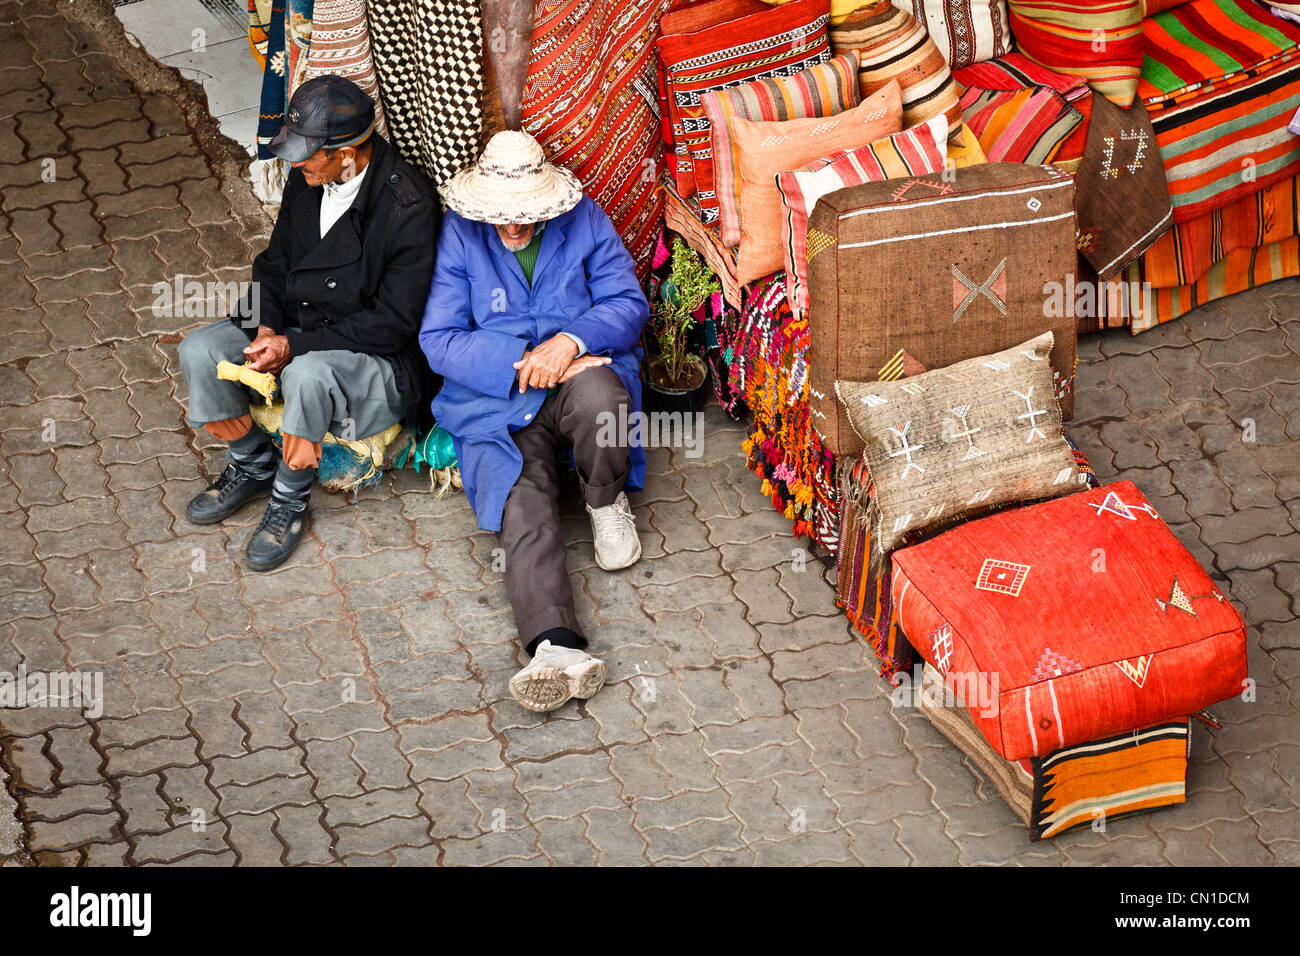 Two men resting on a pile of carpets in the Souk, Medina, Marrakech, Morocco, - Stock Image